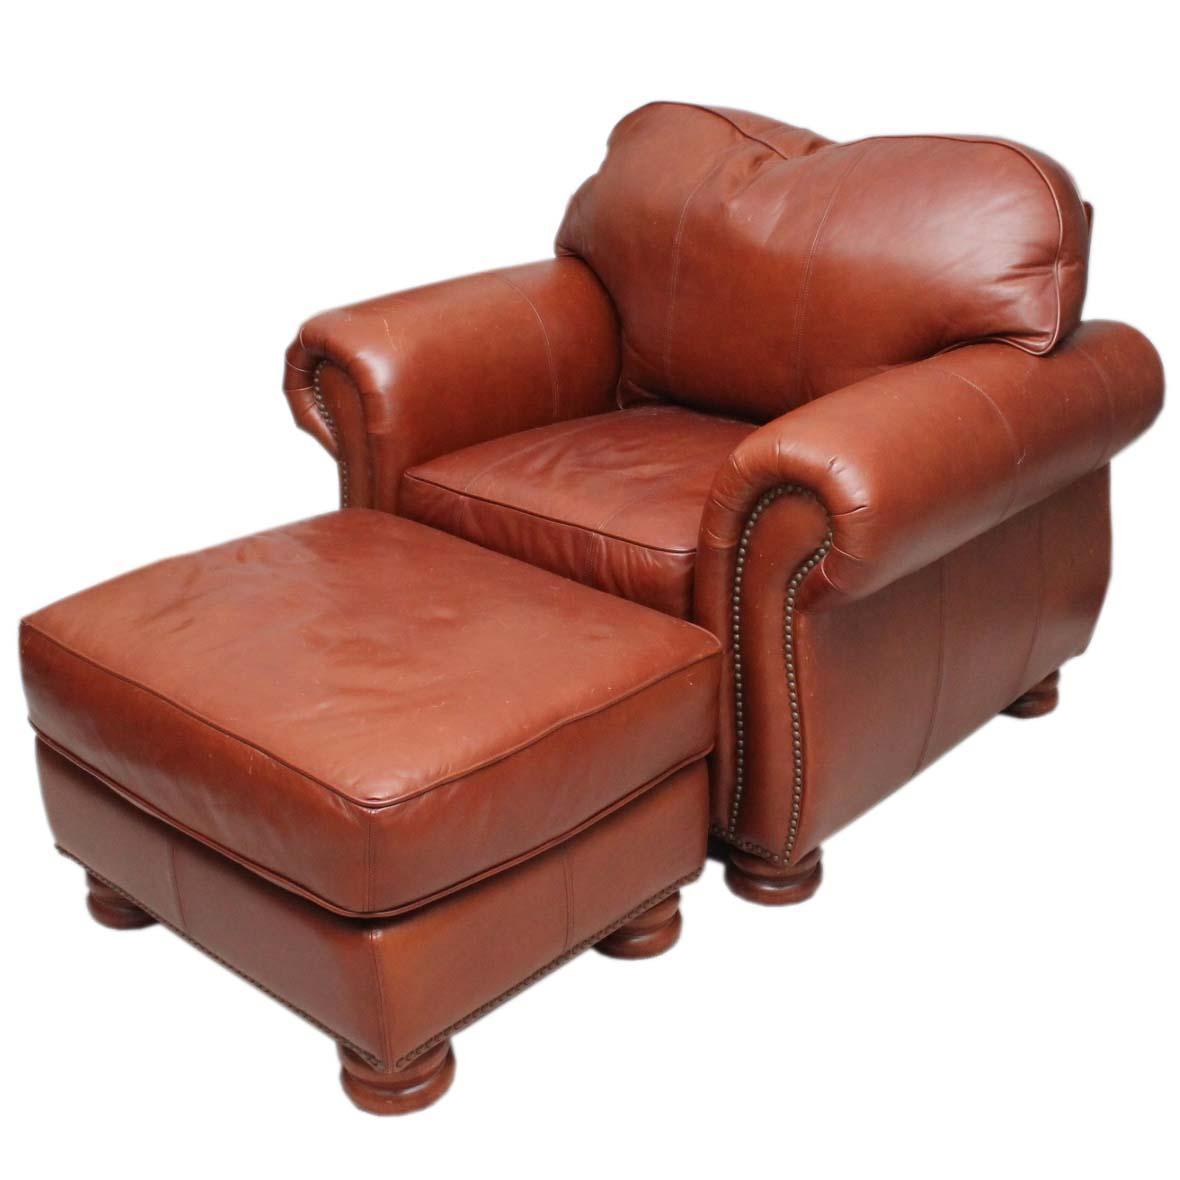 thomasville leather chair covers big w brown and ottoman ebth